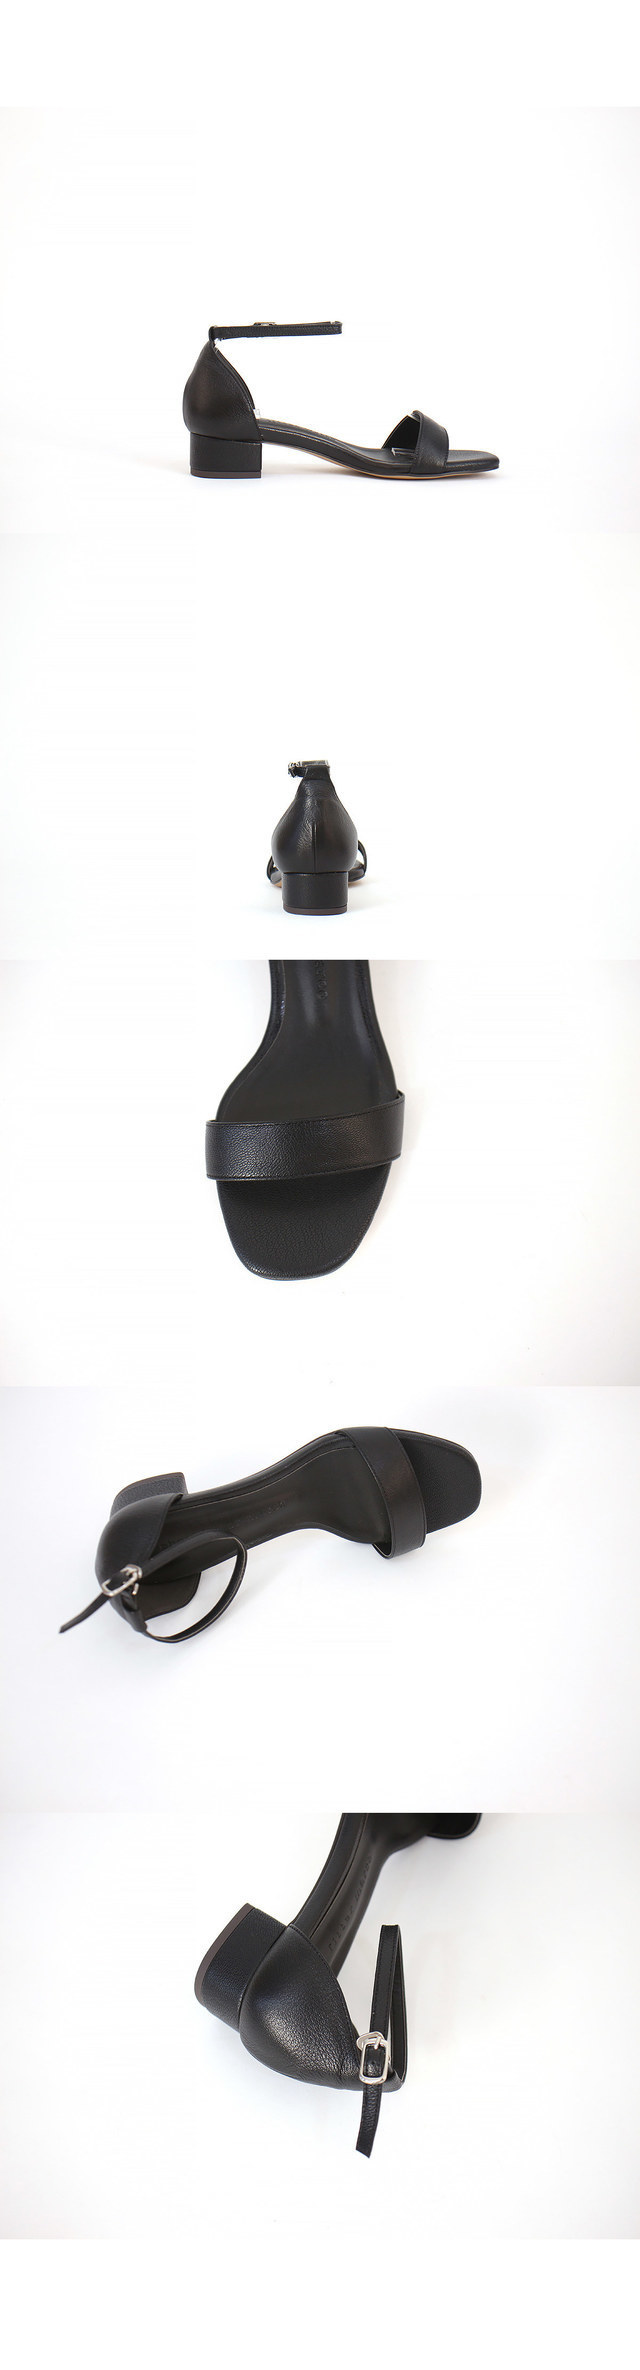 Daily Strap Sandals 3cm